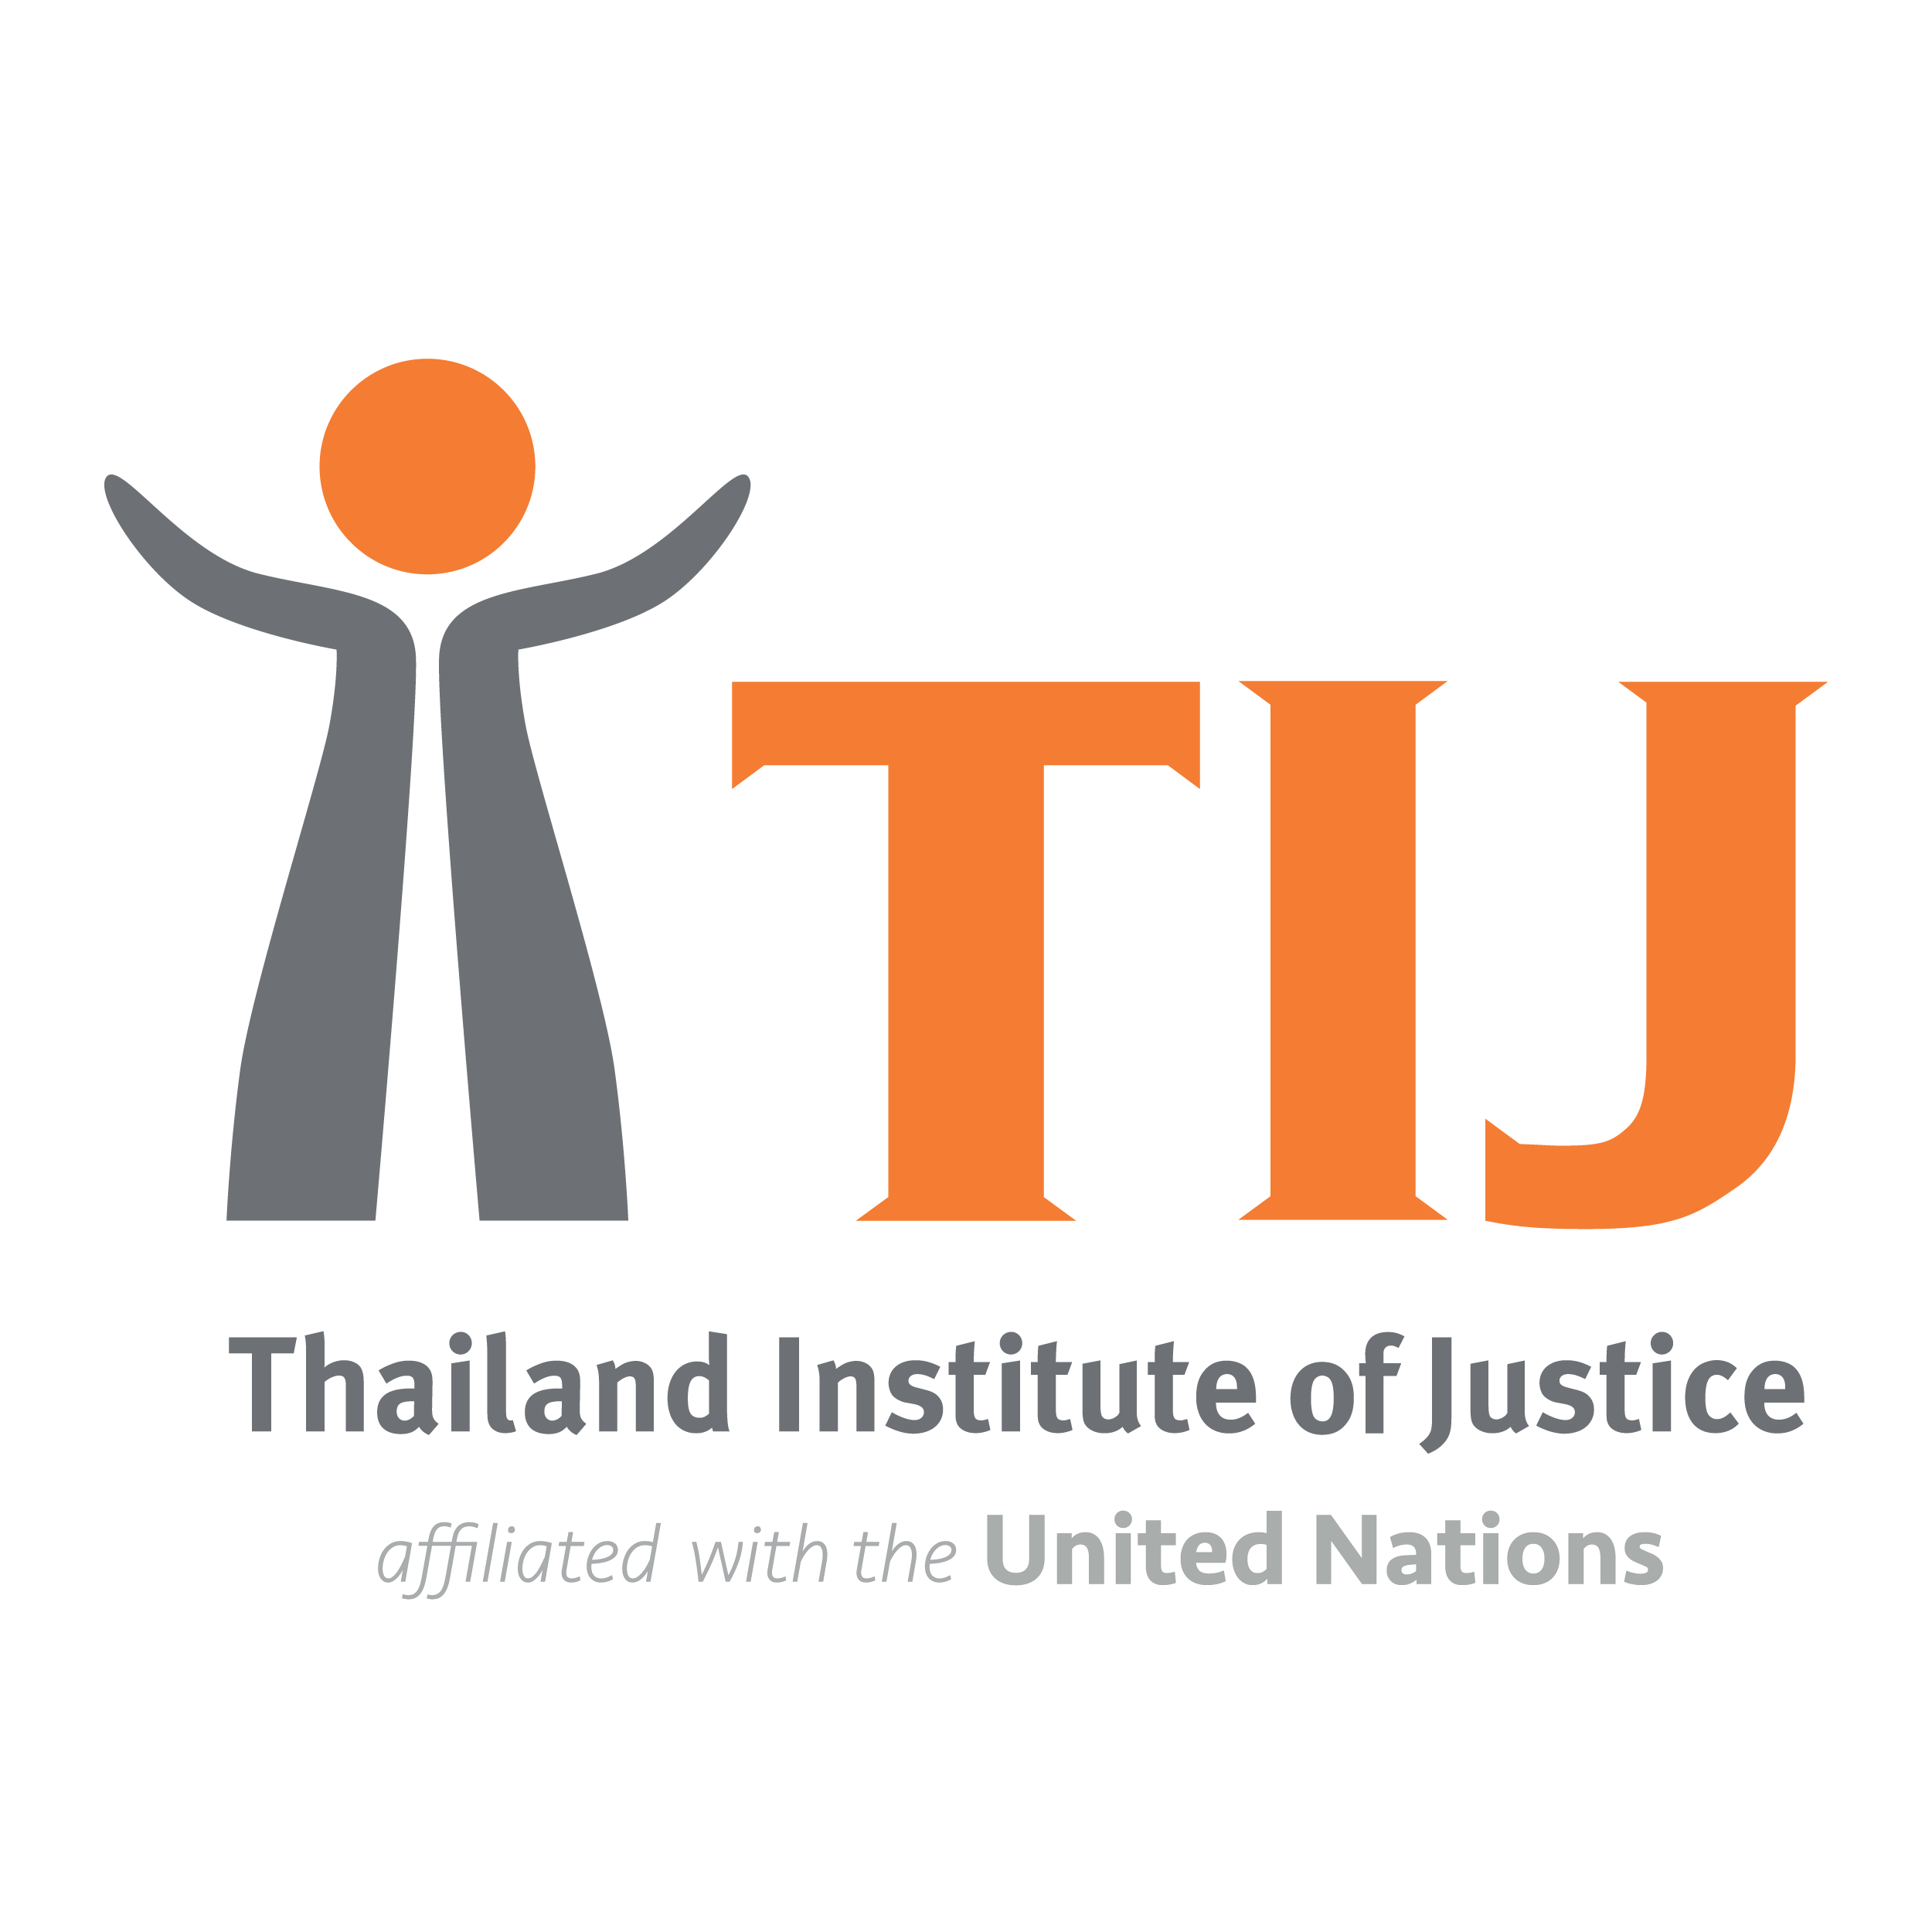 Policy Coordination Officer (เจ้าหน้าที่ประสานนโยบาย)